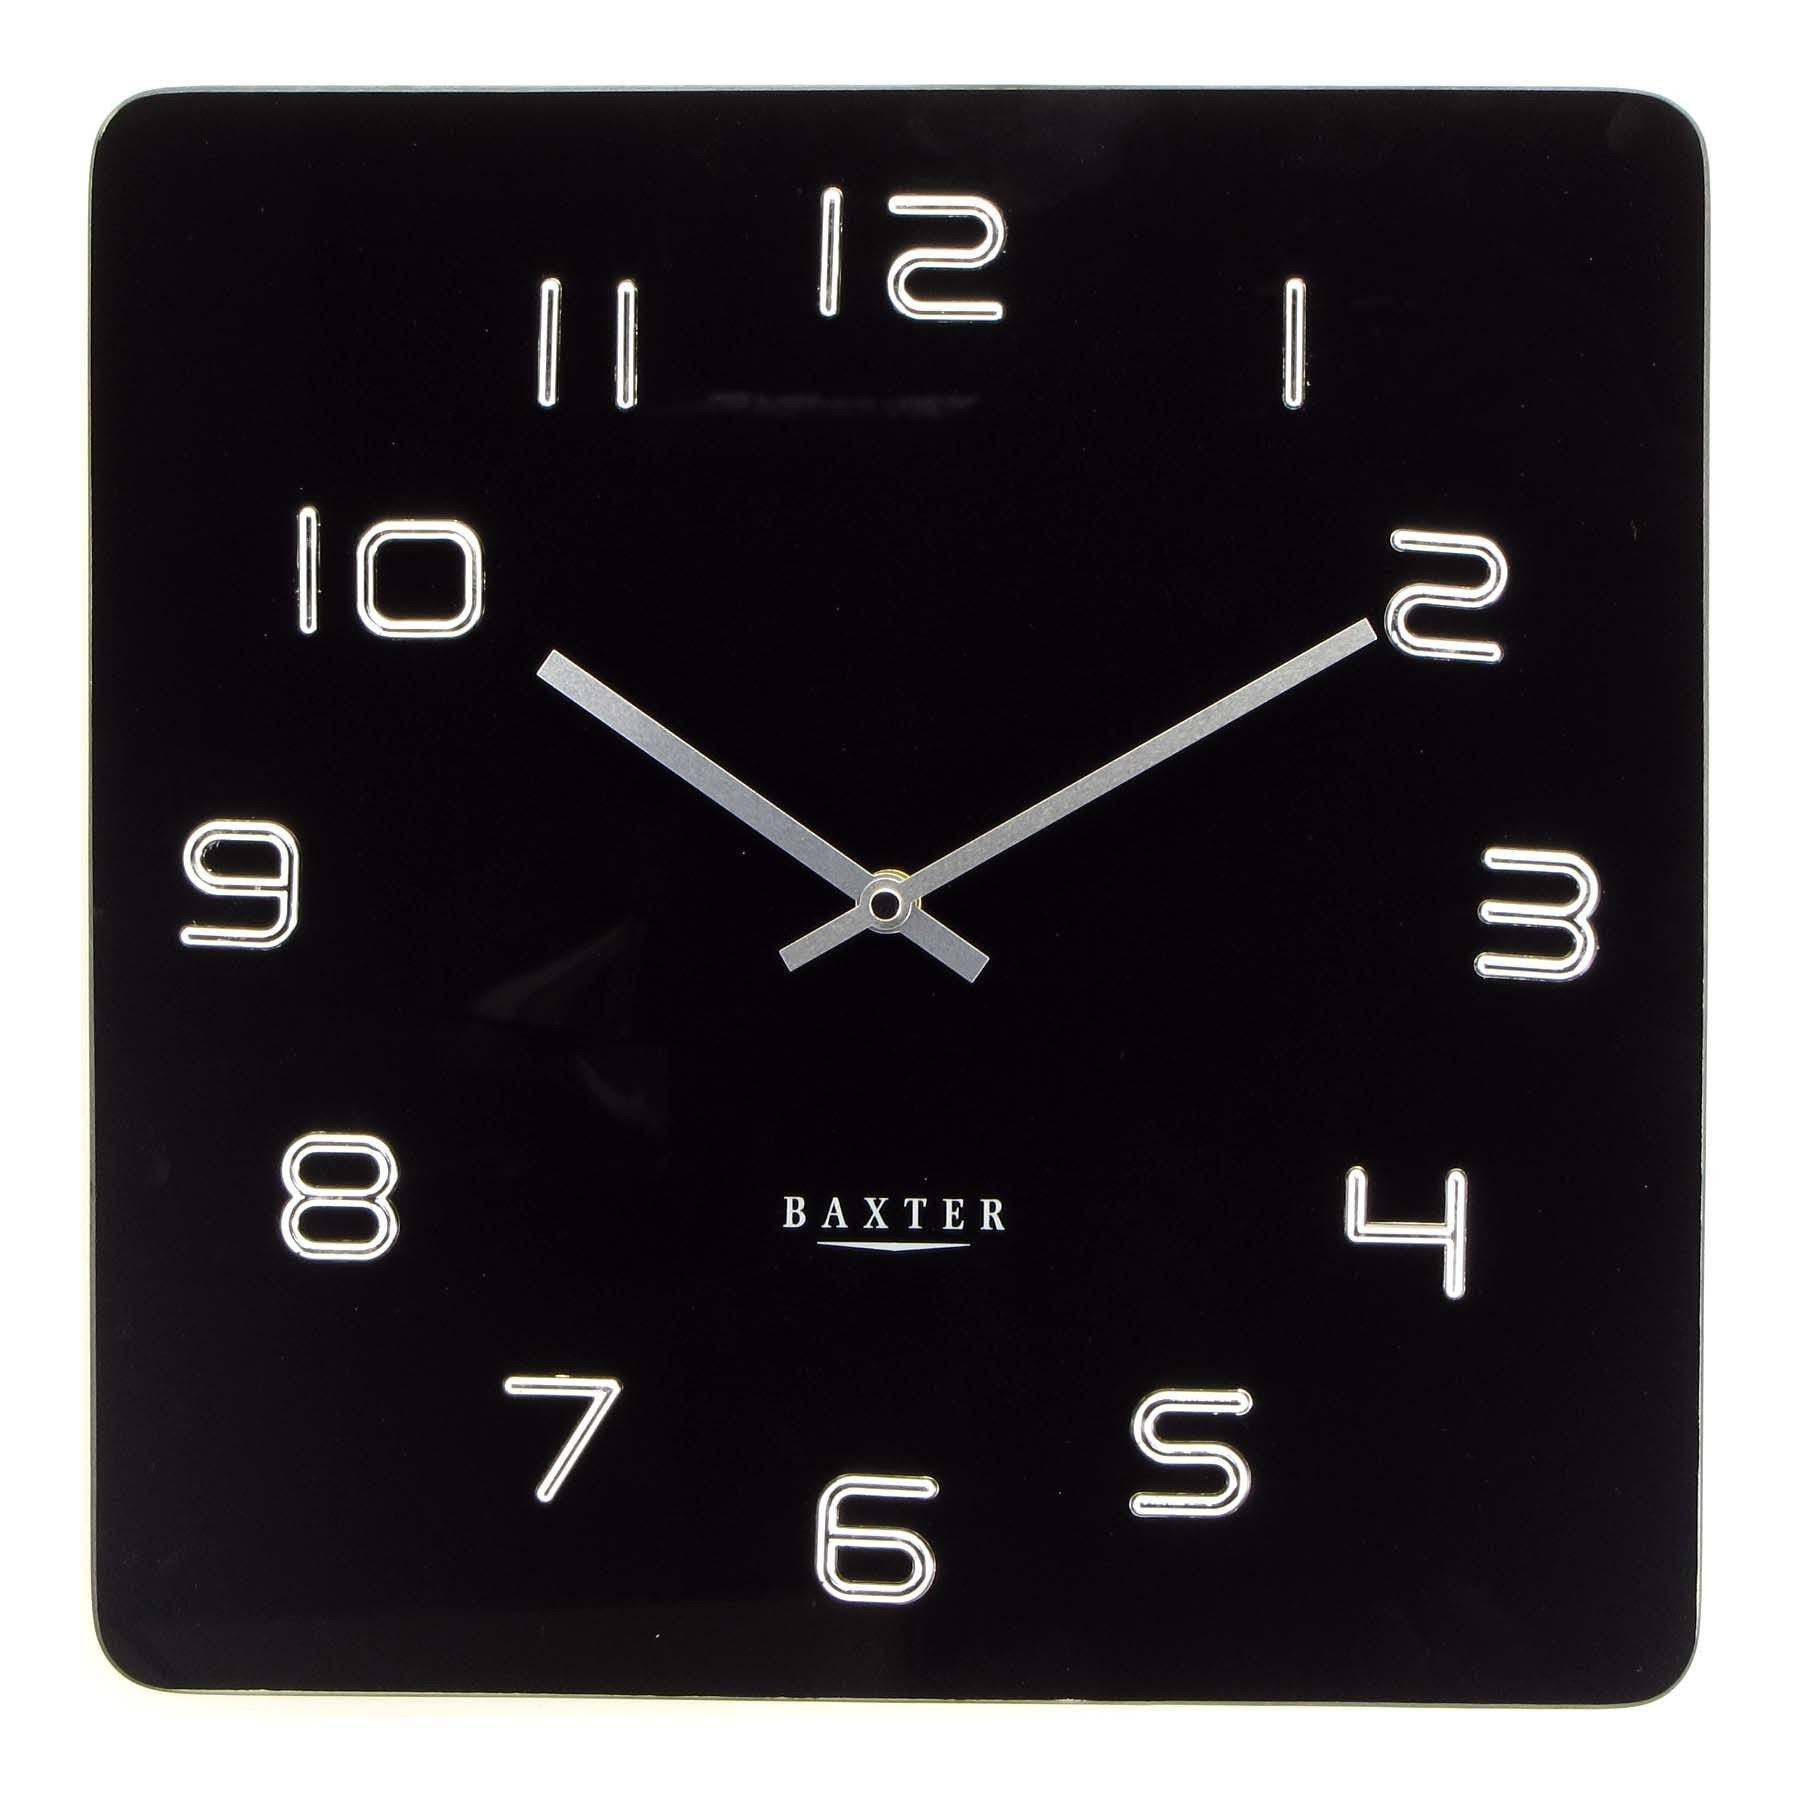 Baxter Square Glass Wall Clock Black 35cm PW7008BLK